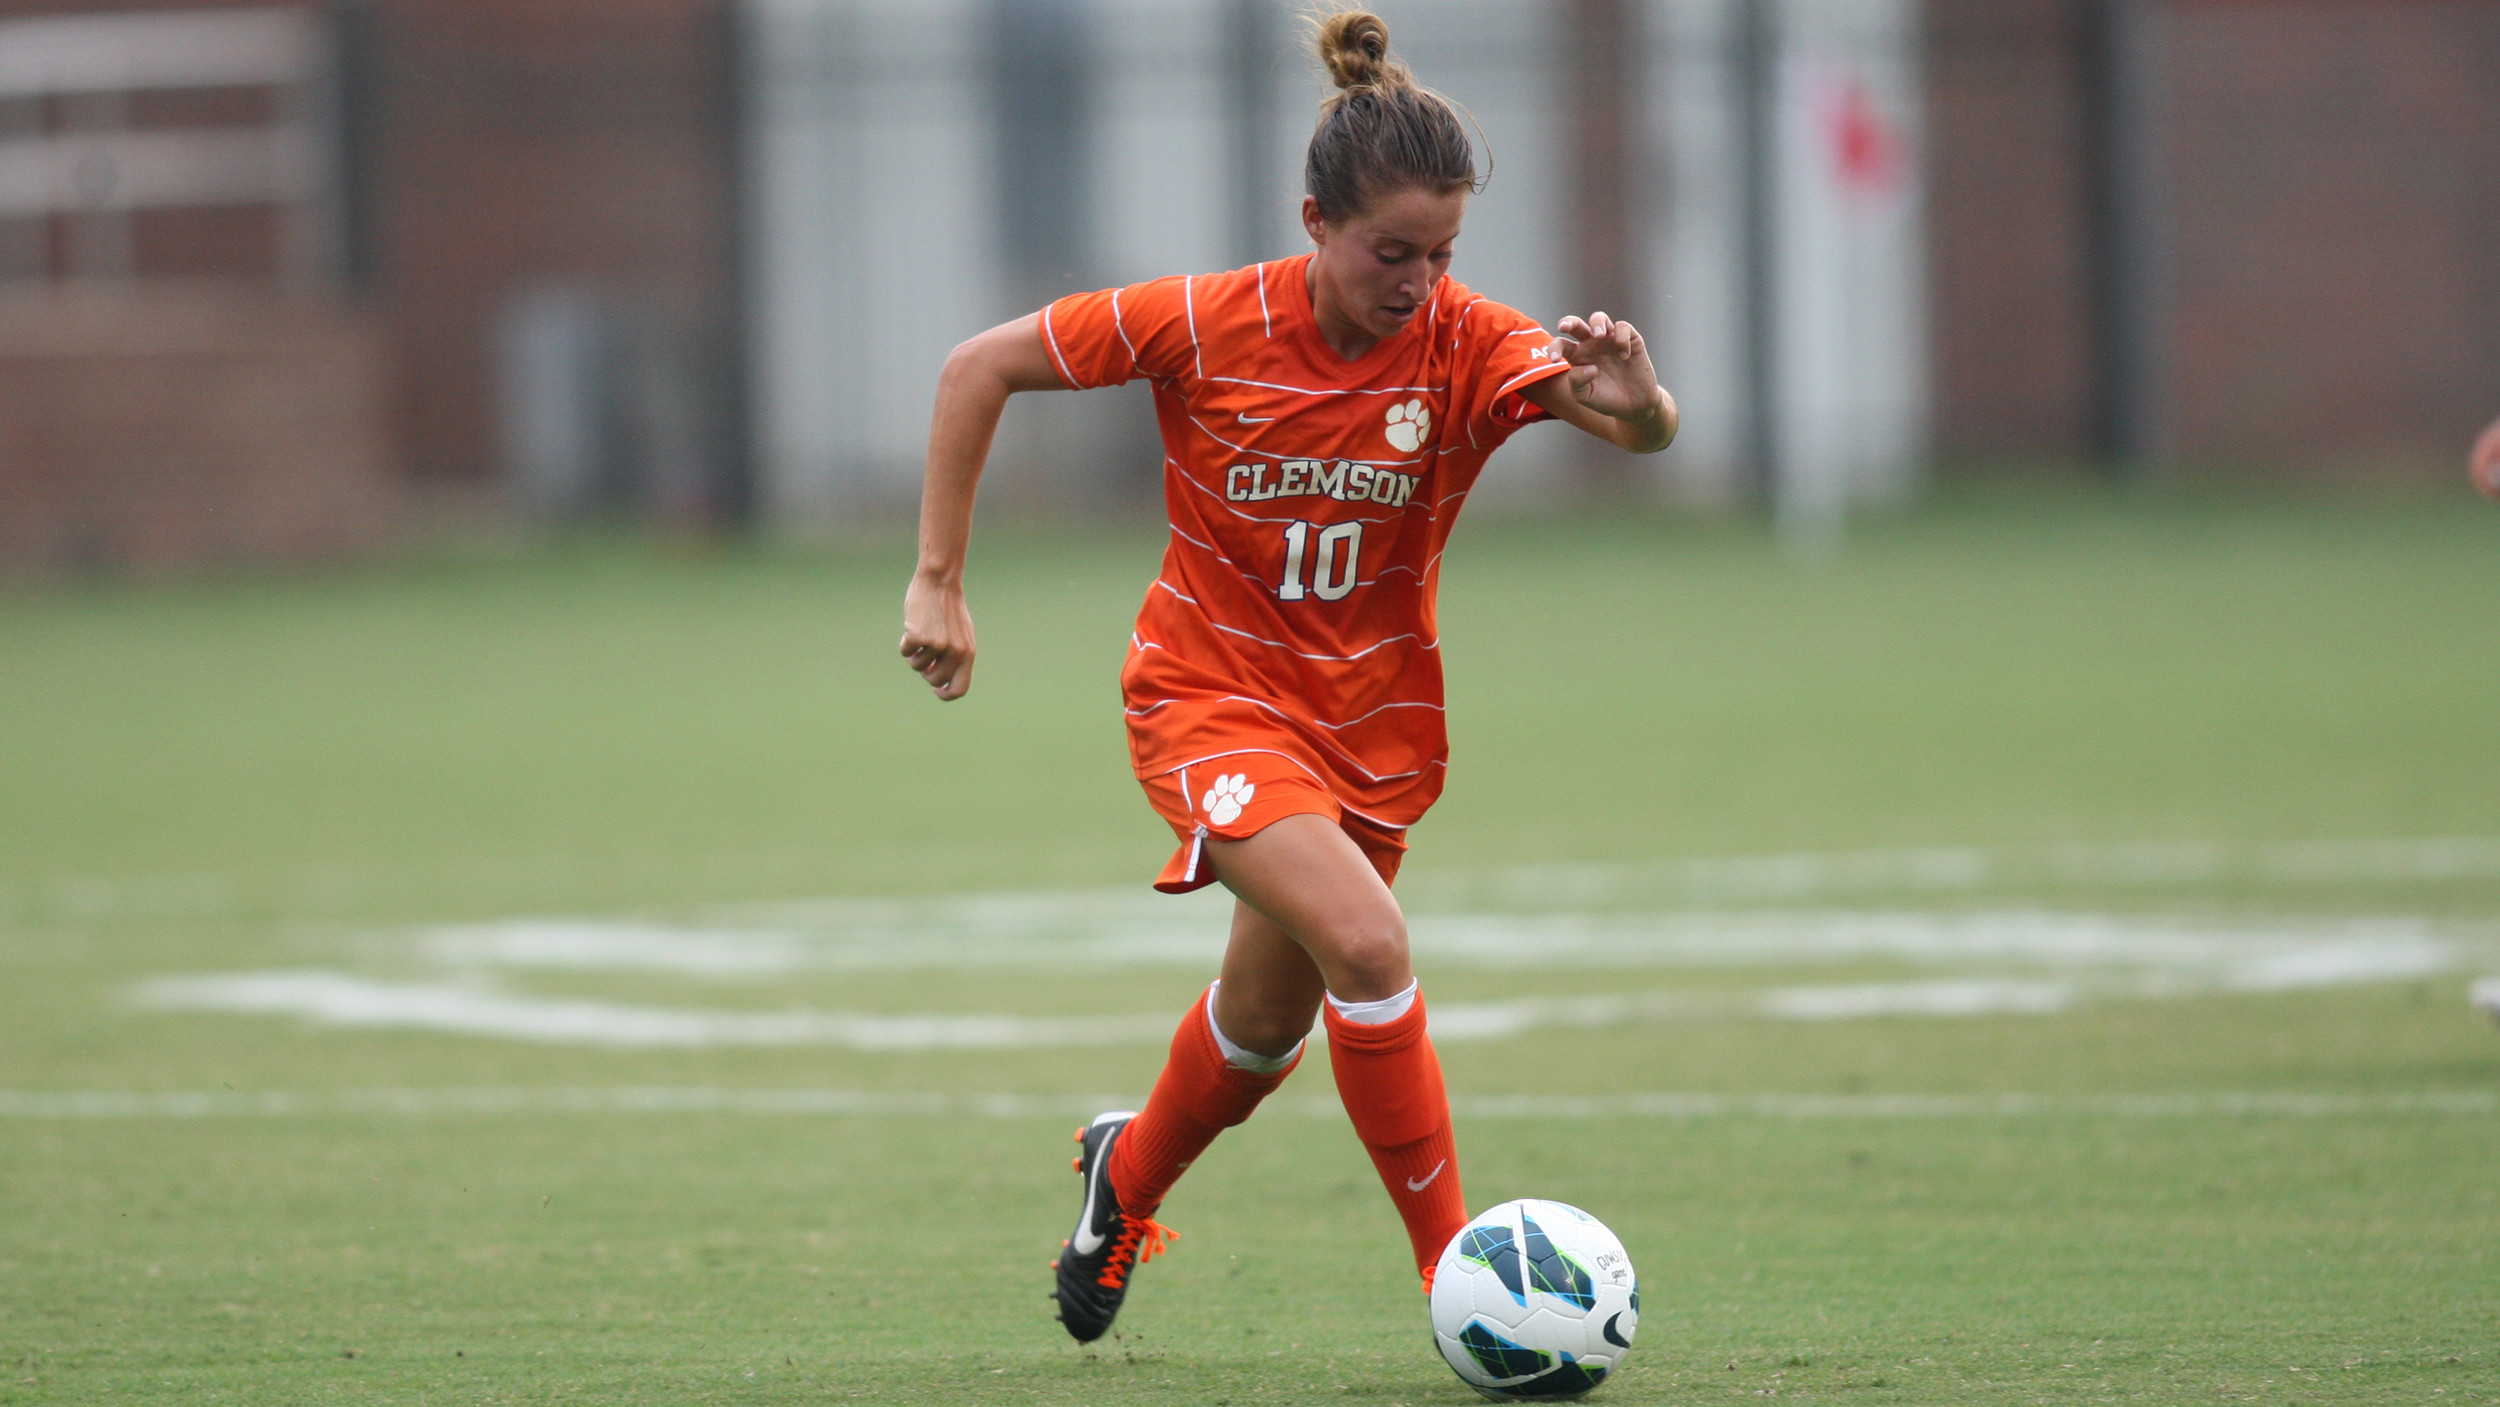 Clemson Women's Soccer Team Plays to Double-Overtime Tie with USF Friday in Tampa